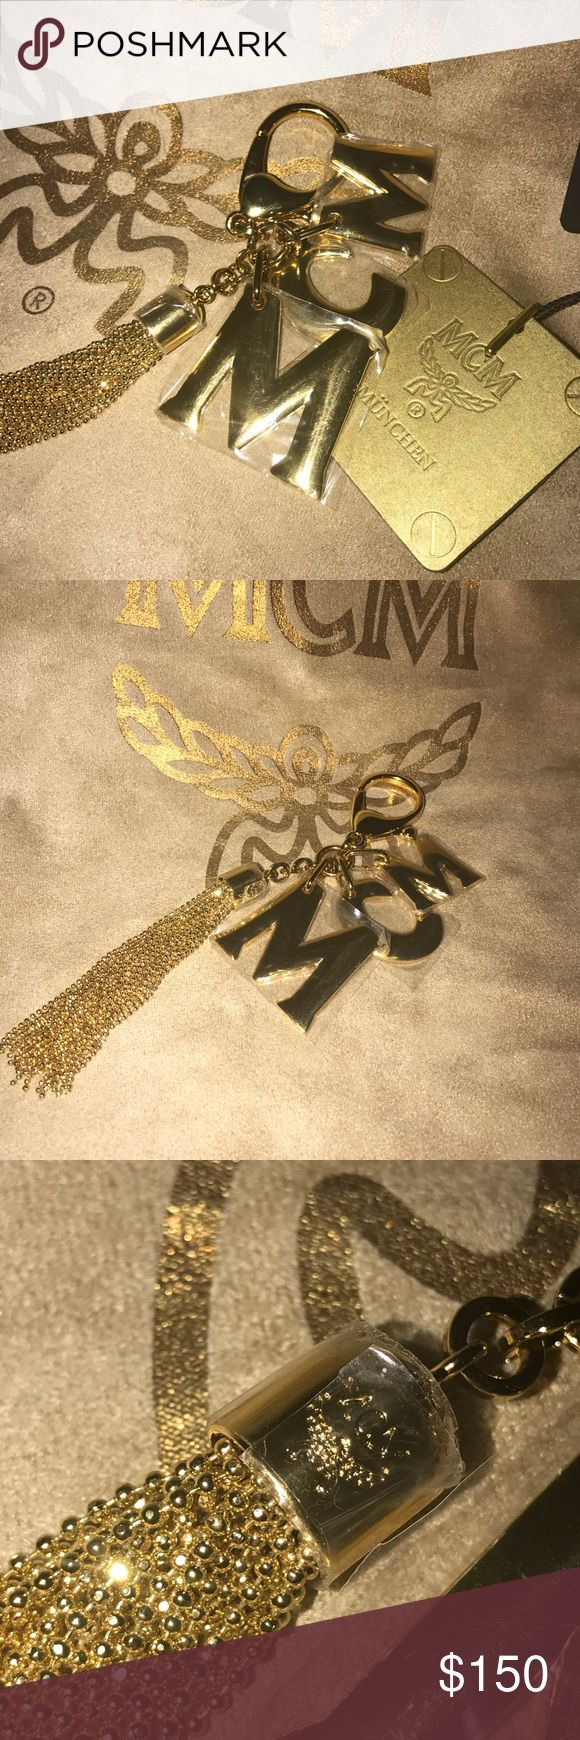 MCM, Brand New BAG Charm/ Key Chain. Stunning MCM bag charm, can also be used as an addition to your key chain. (Does NOT come with anything else) MCM Accessories Key & Card Holders